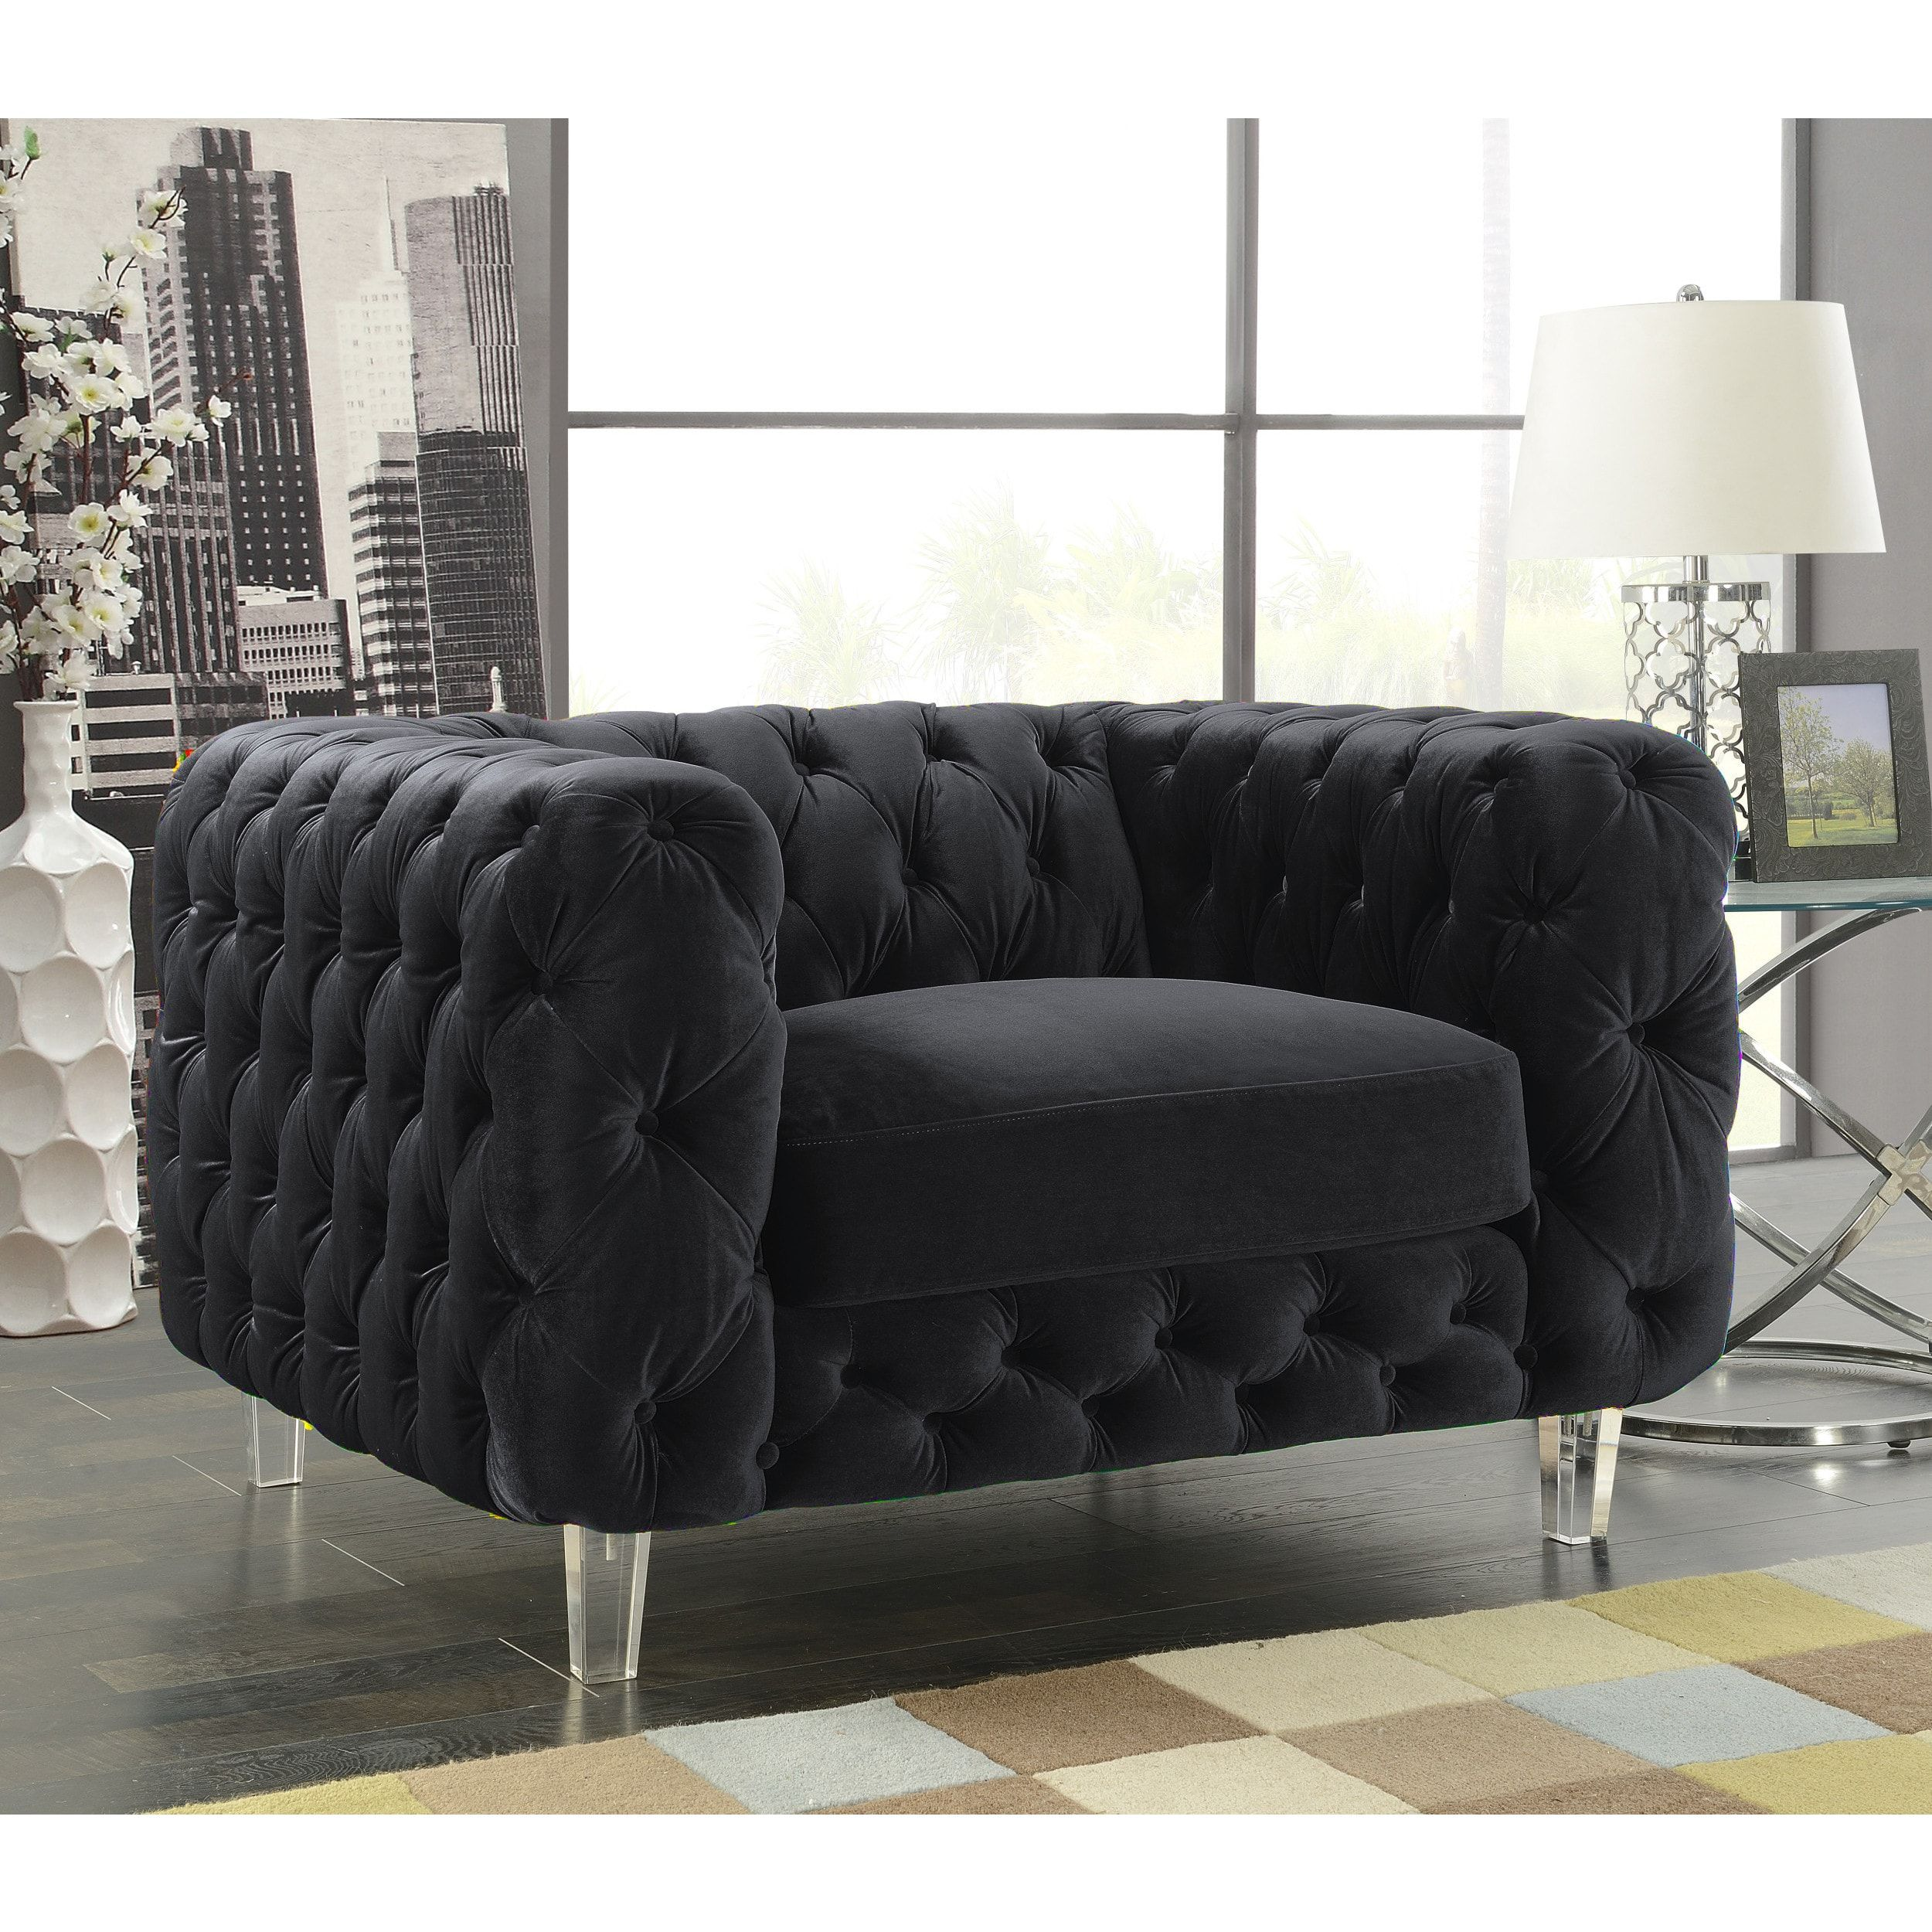 Chic home modern contemporary tufted velvet down mix